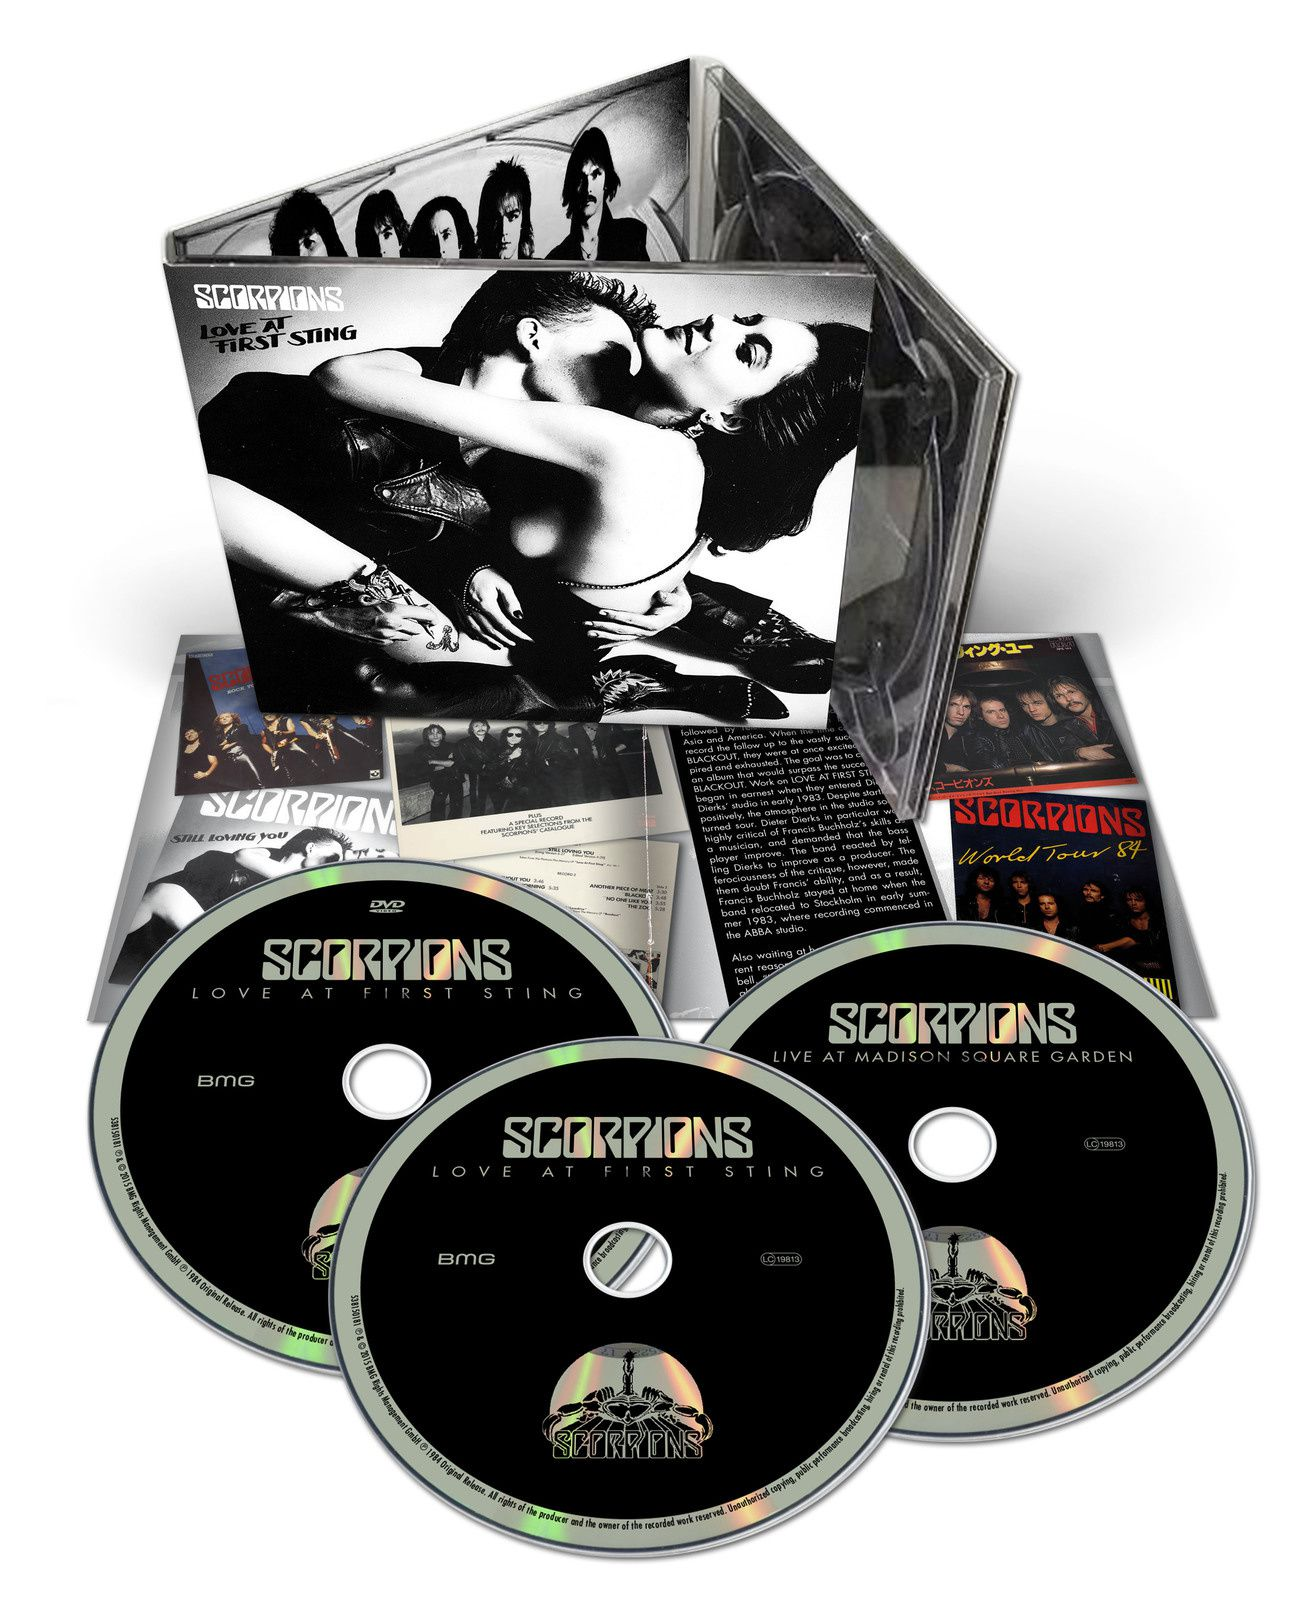 CD review SCORPIONS &quot&#x3B;Love At First Sting&quot&#x3B; 50th Anniversary Deluxe Edition